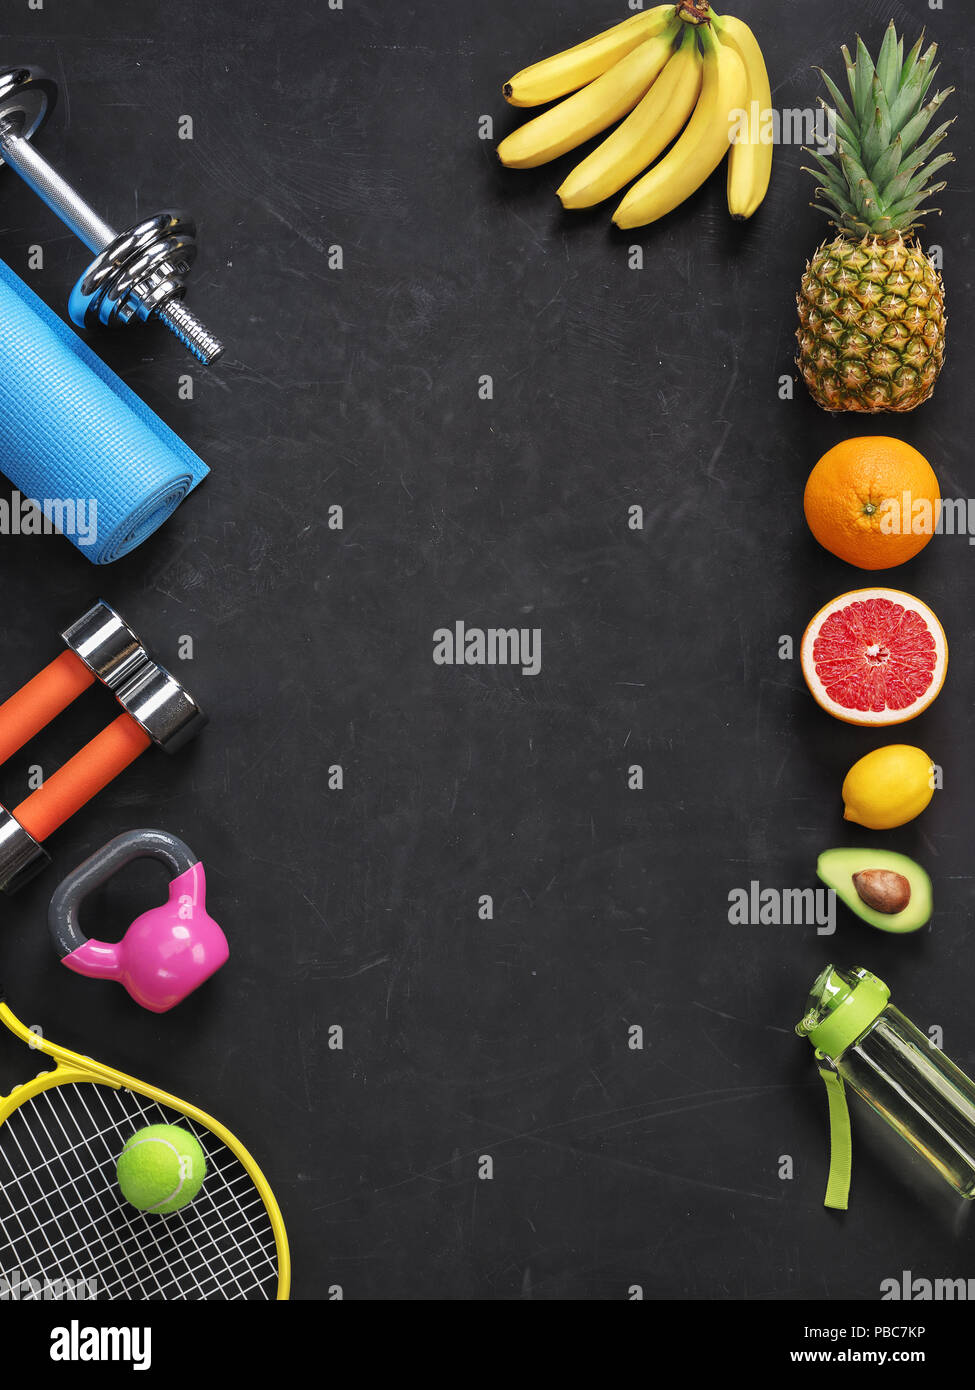 Sports equipment and organic food on black background. Top view. Motivation - Stock Image